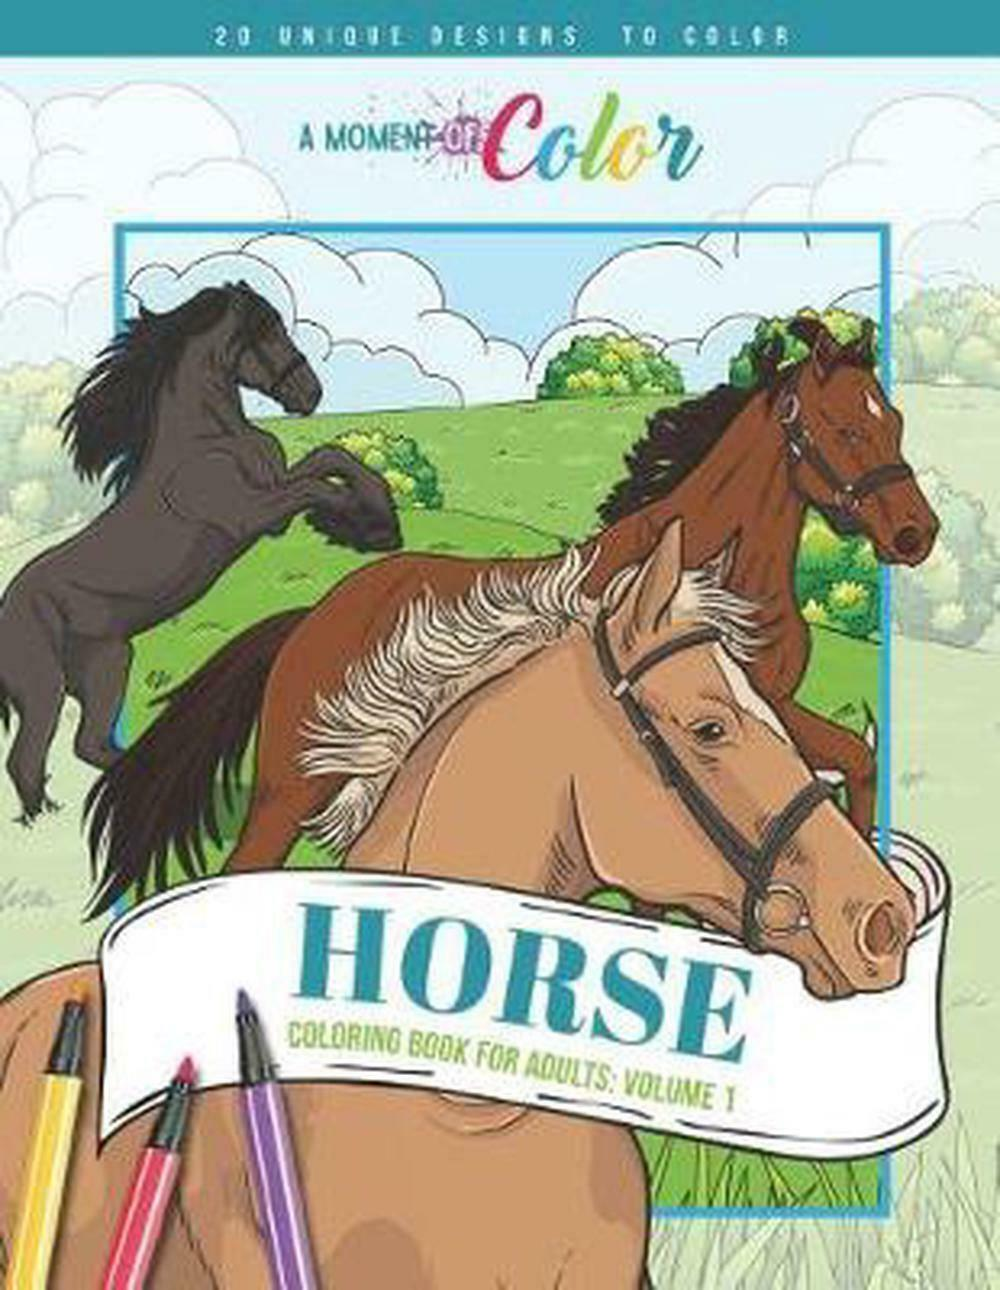 A Moment of Color  Horse Coloring Book for Adults by Alicia Brewer and  Angela Gaines 18, Trade Paperback